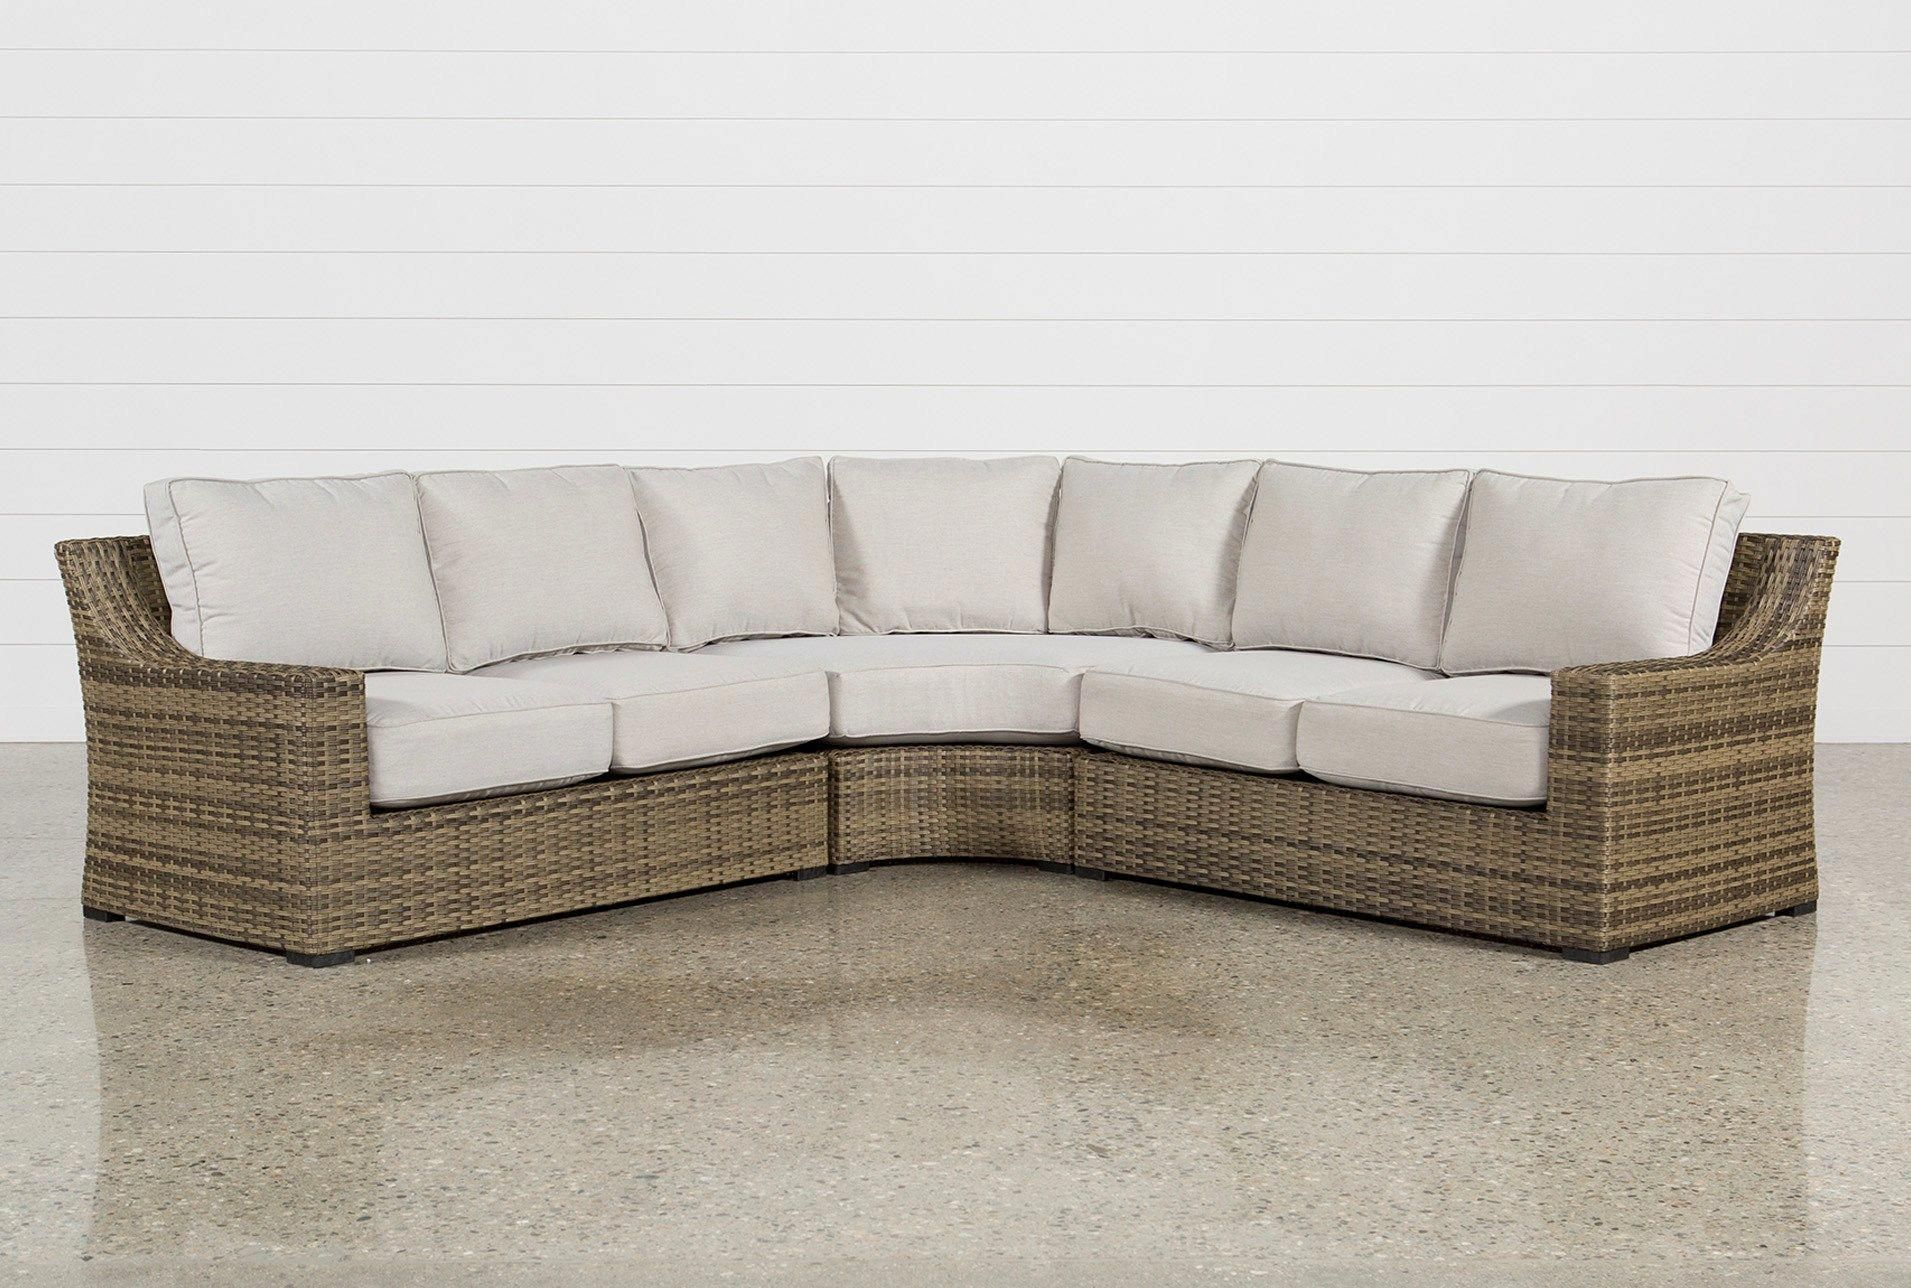 Shop For Outdoor Aventura 3 Piece Sectional At Livingspaces Com